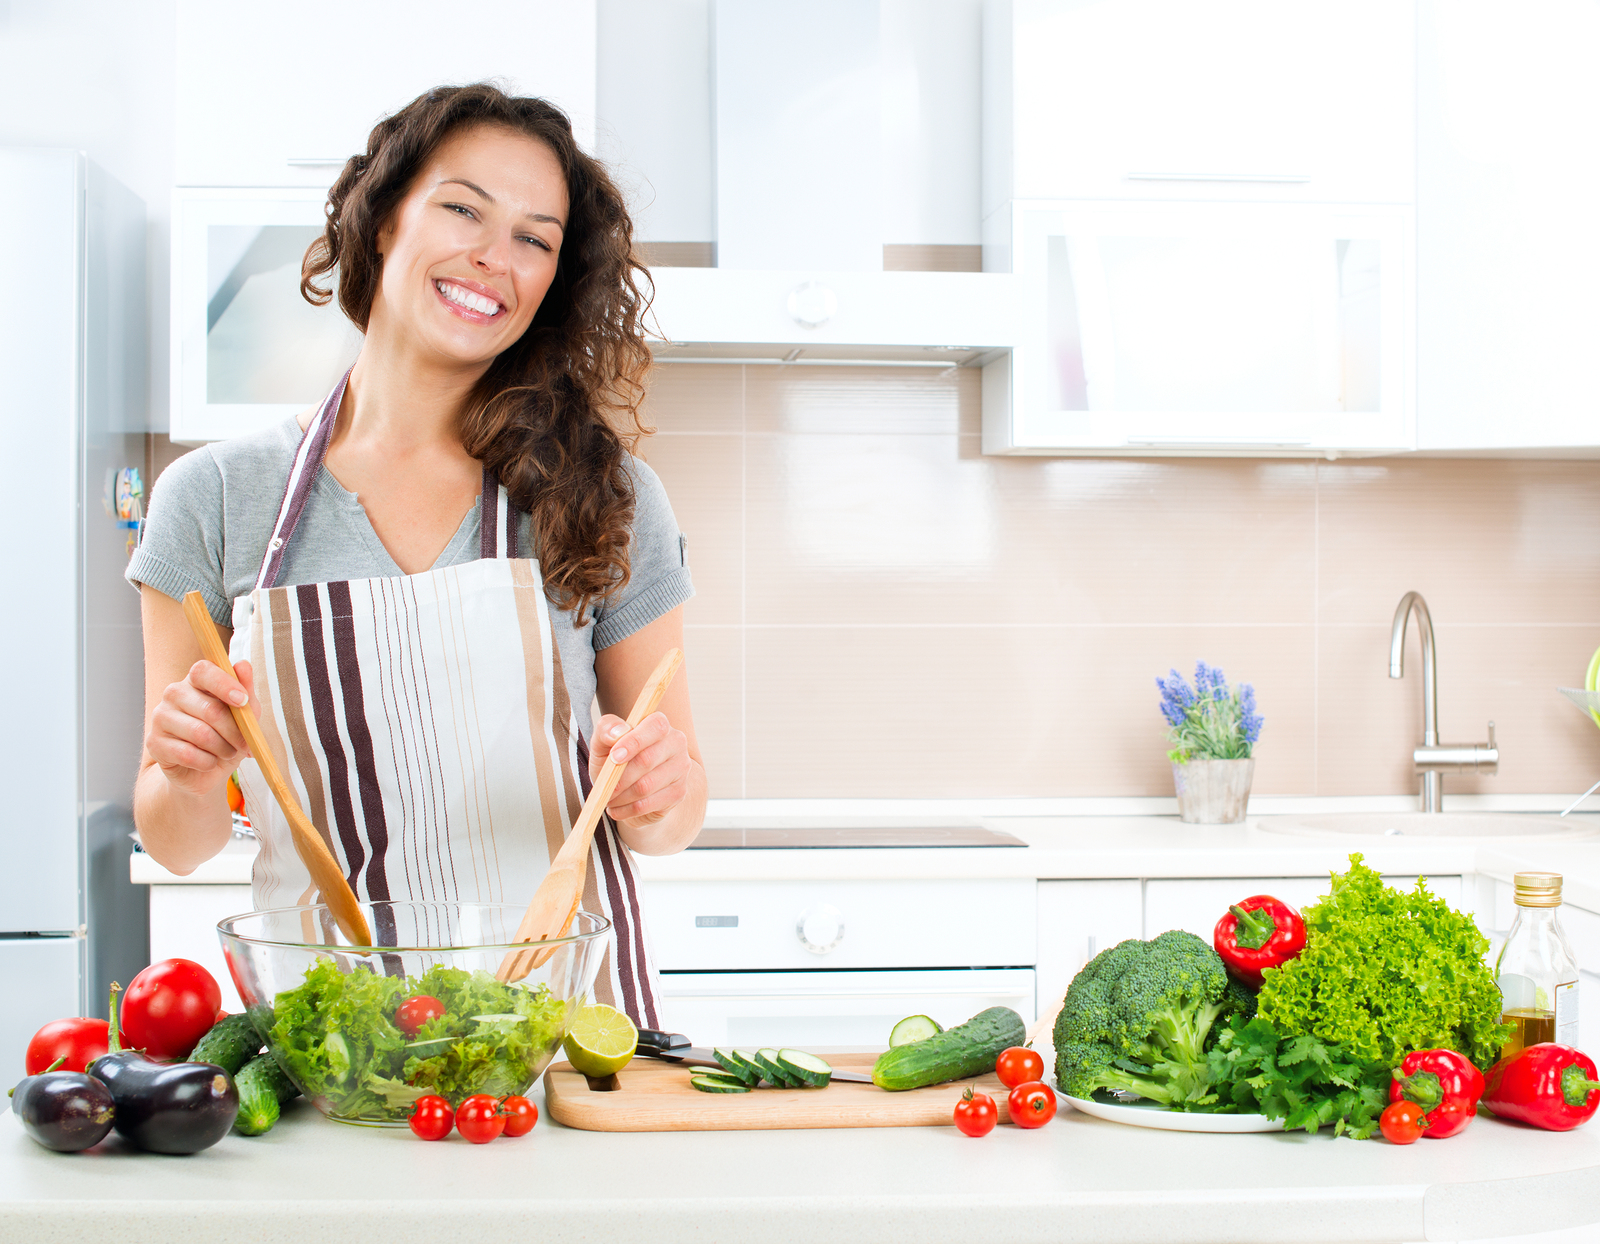 woman in kitchen dreaming of a healthier 4u vending small business startup